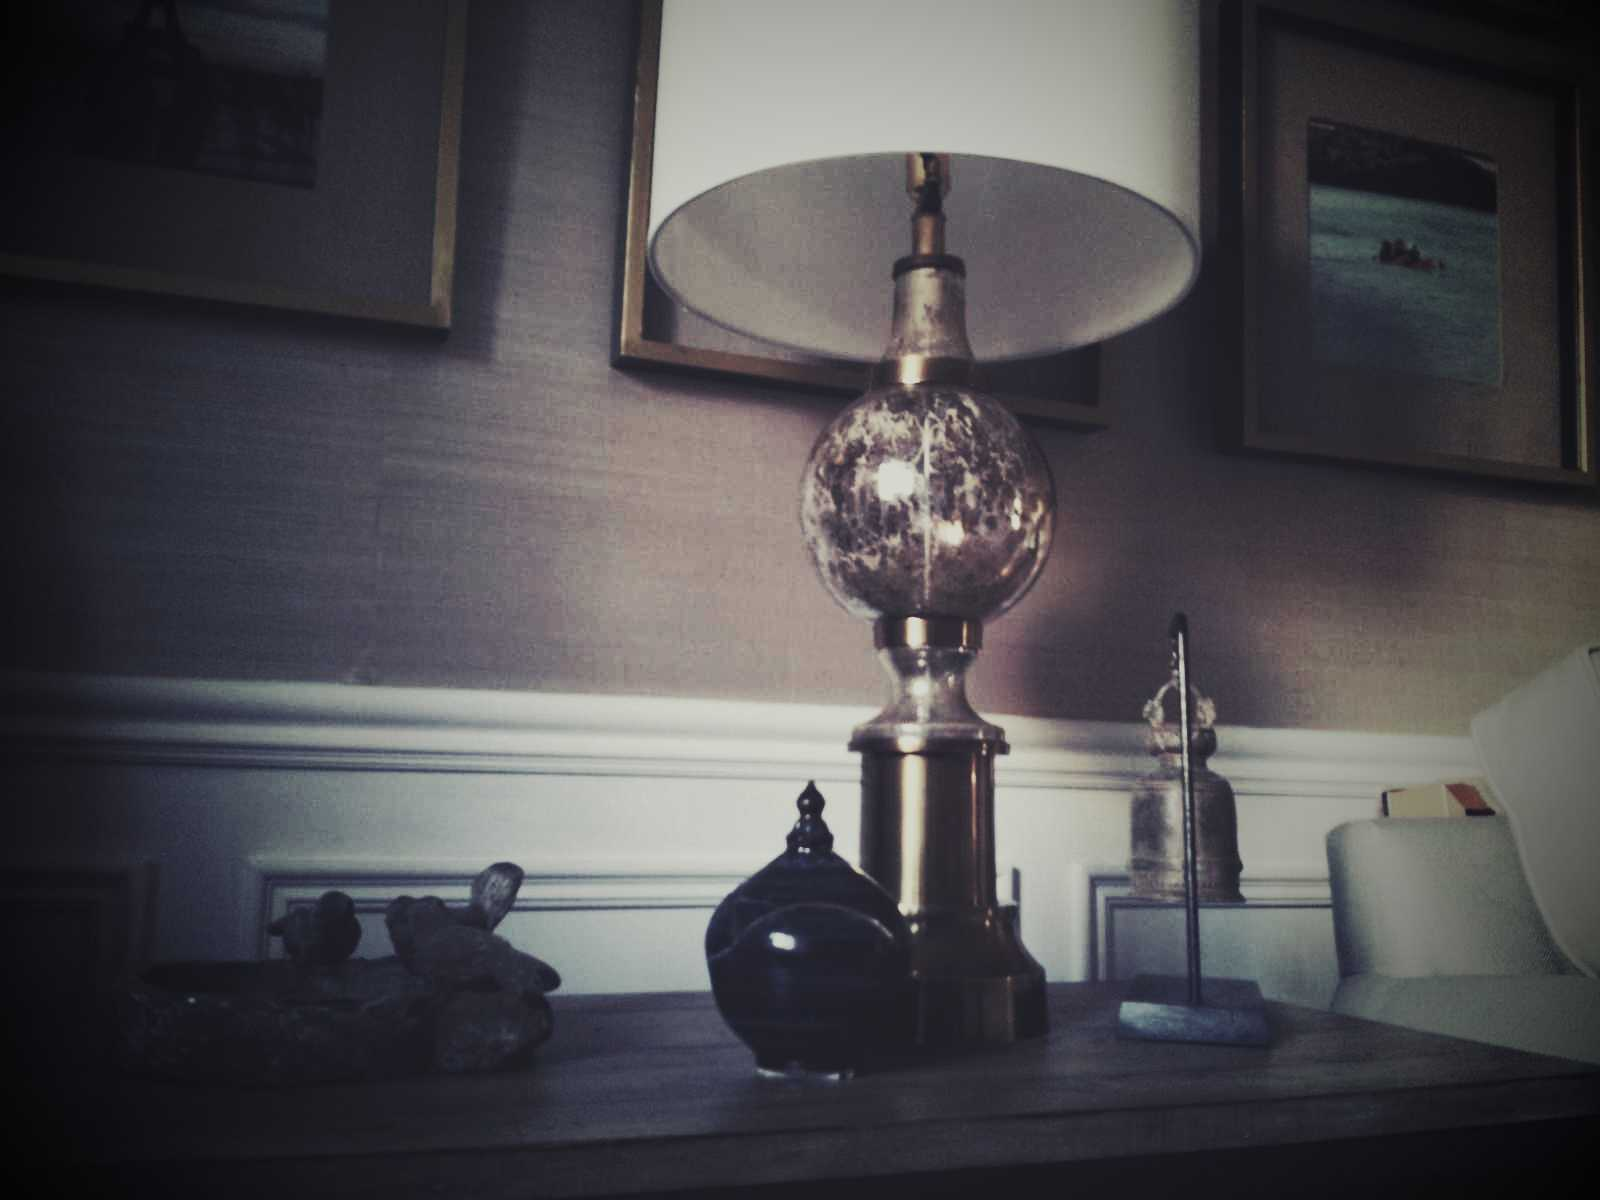 Living room, lamp with gold accents